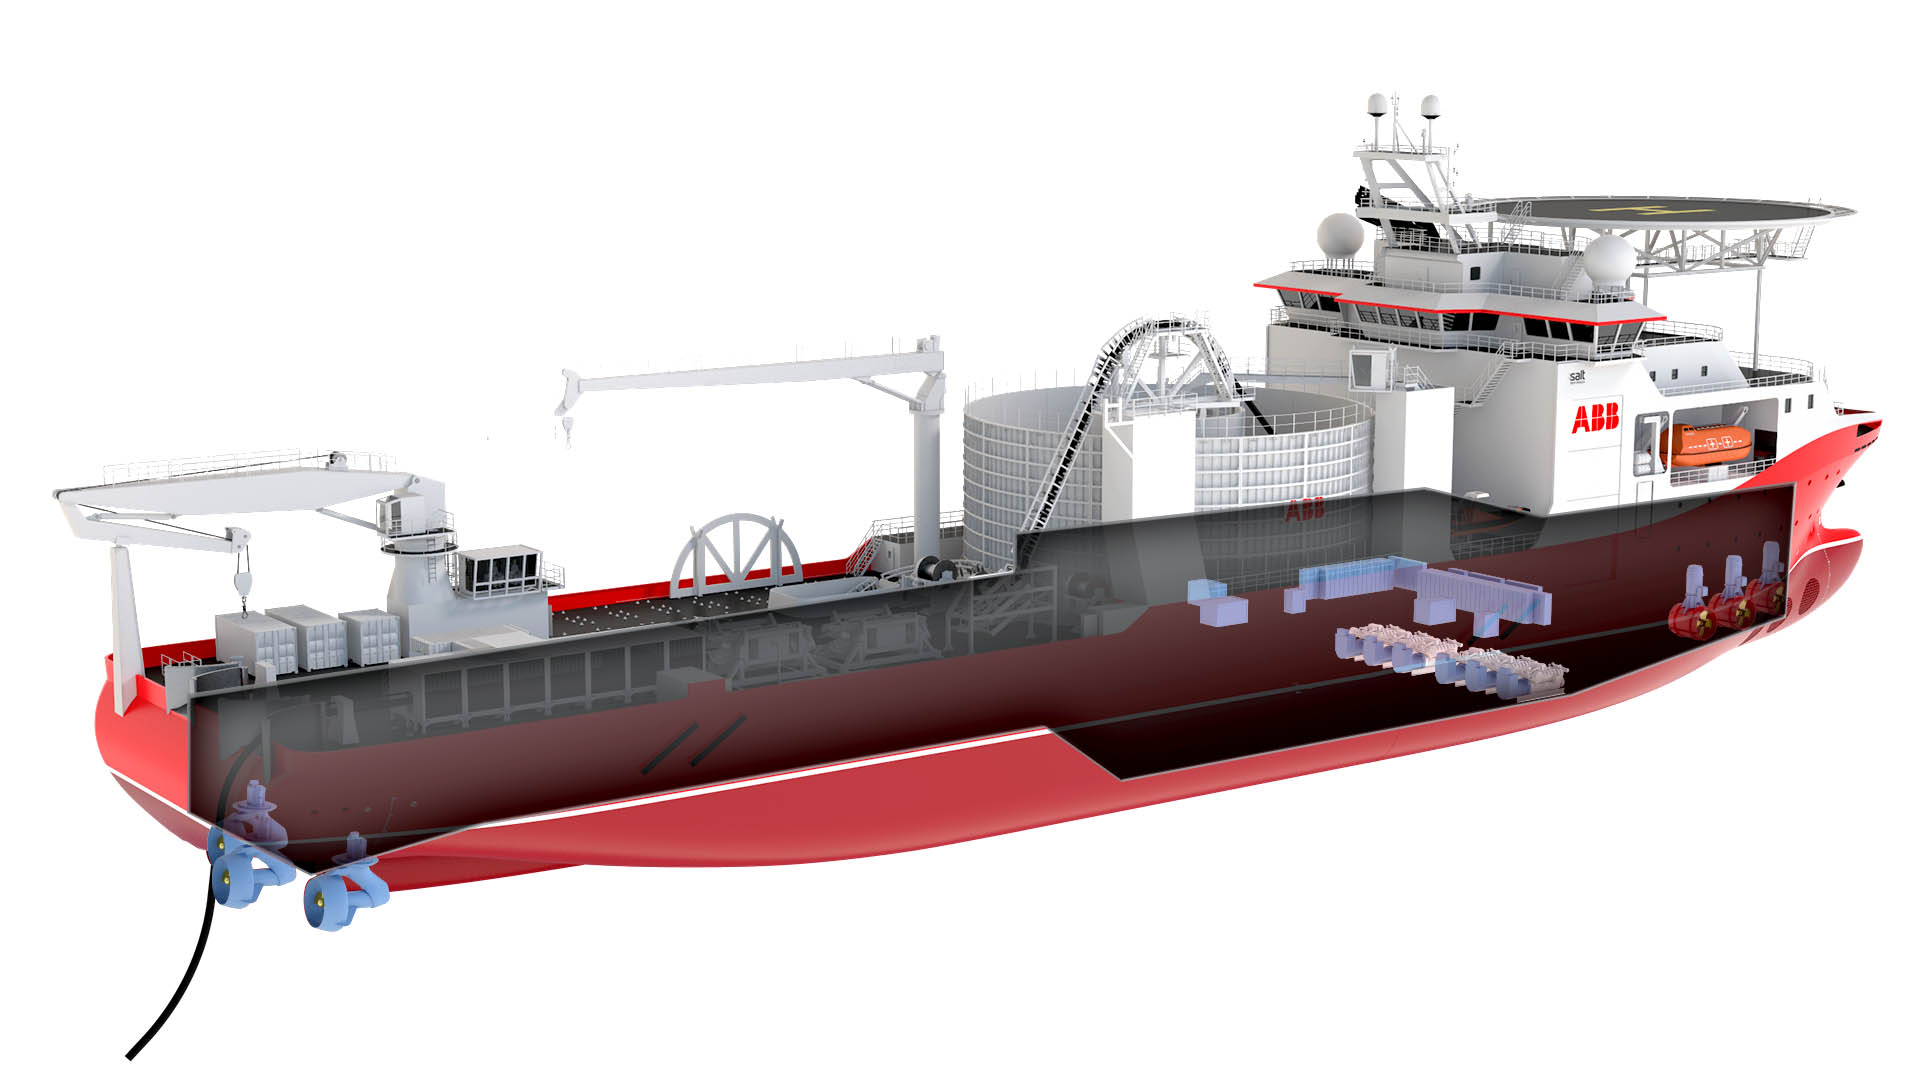 Abb Orders New Cable Laying Vessel Offshore Wind Industry